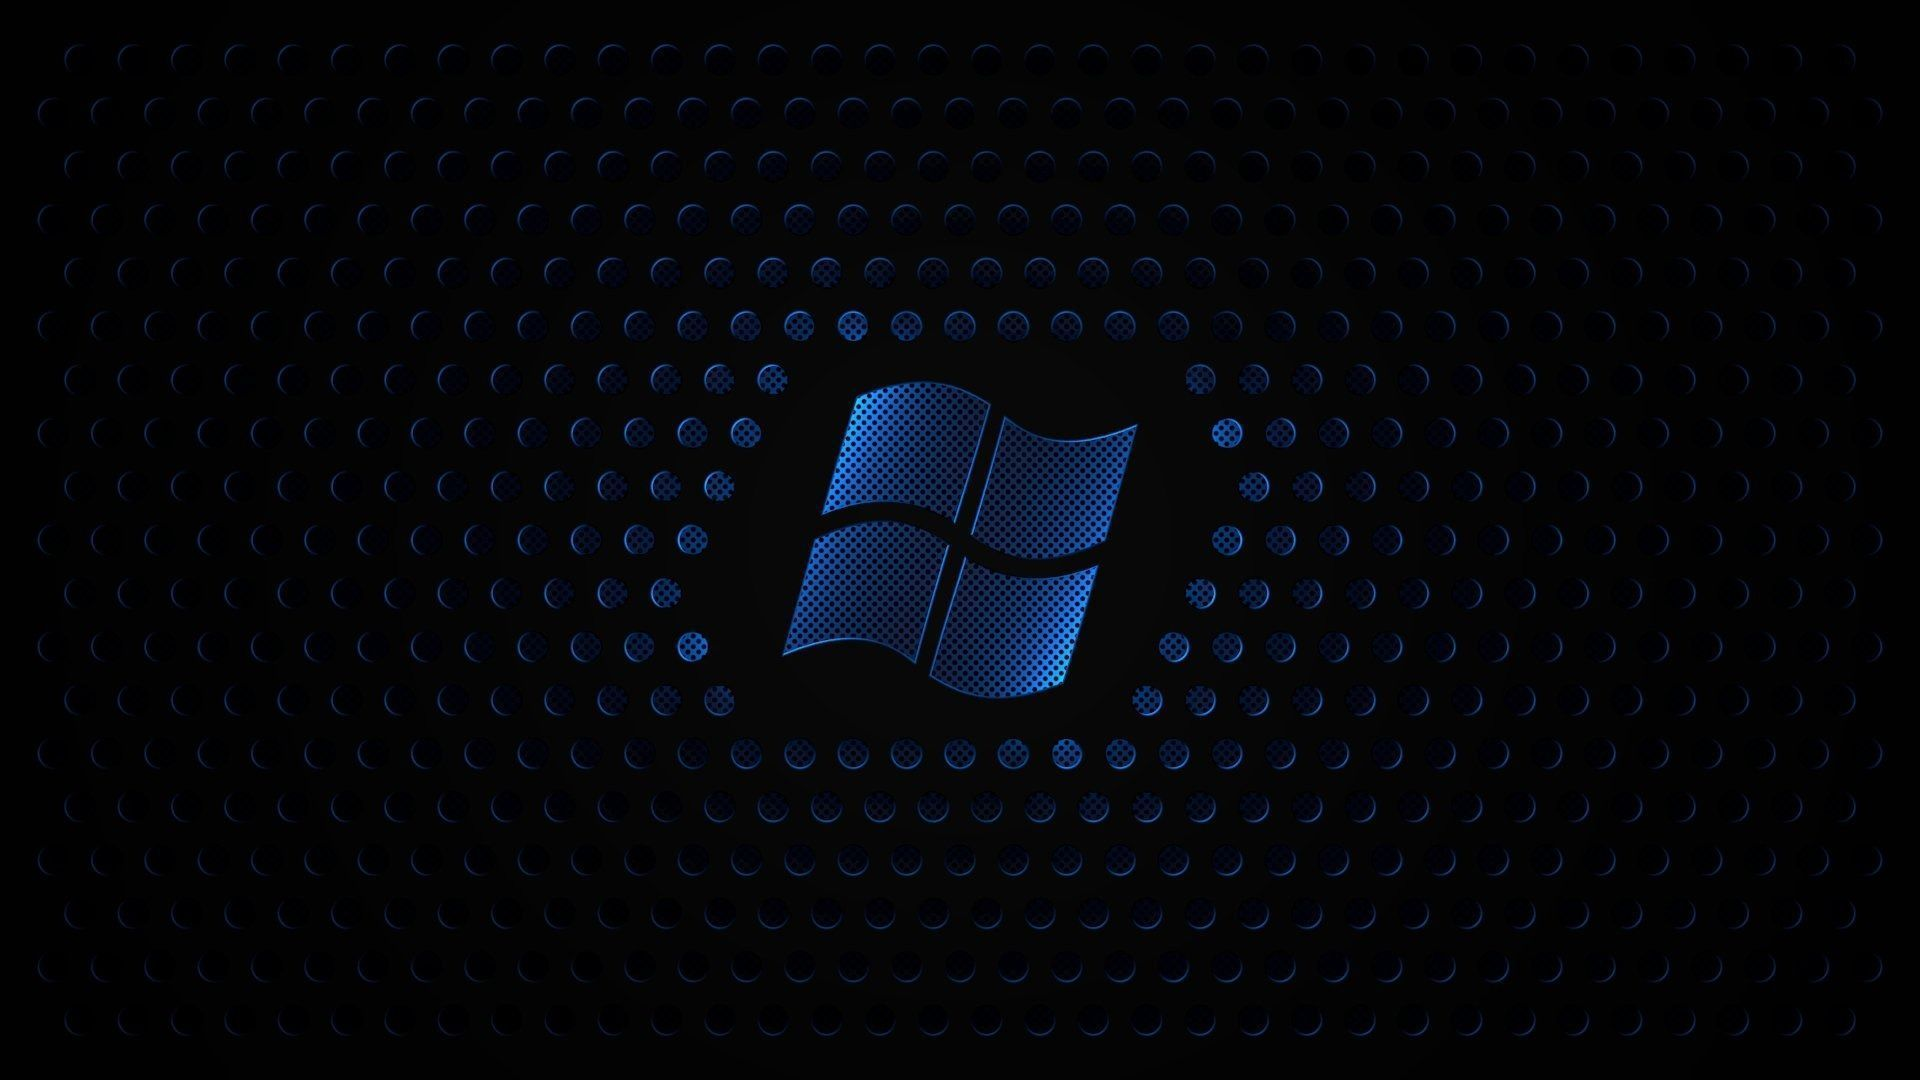 Img 283317 Jpg 1920 1080 Windows Wallpaper Black And Blue Background Black Hd Wallpaper